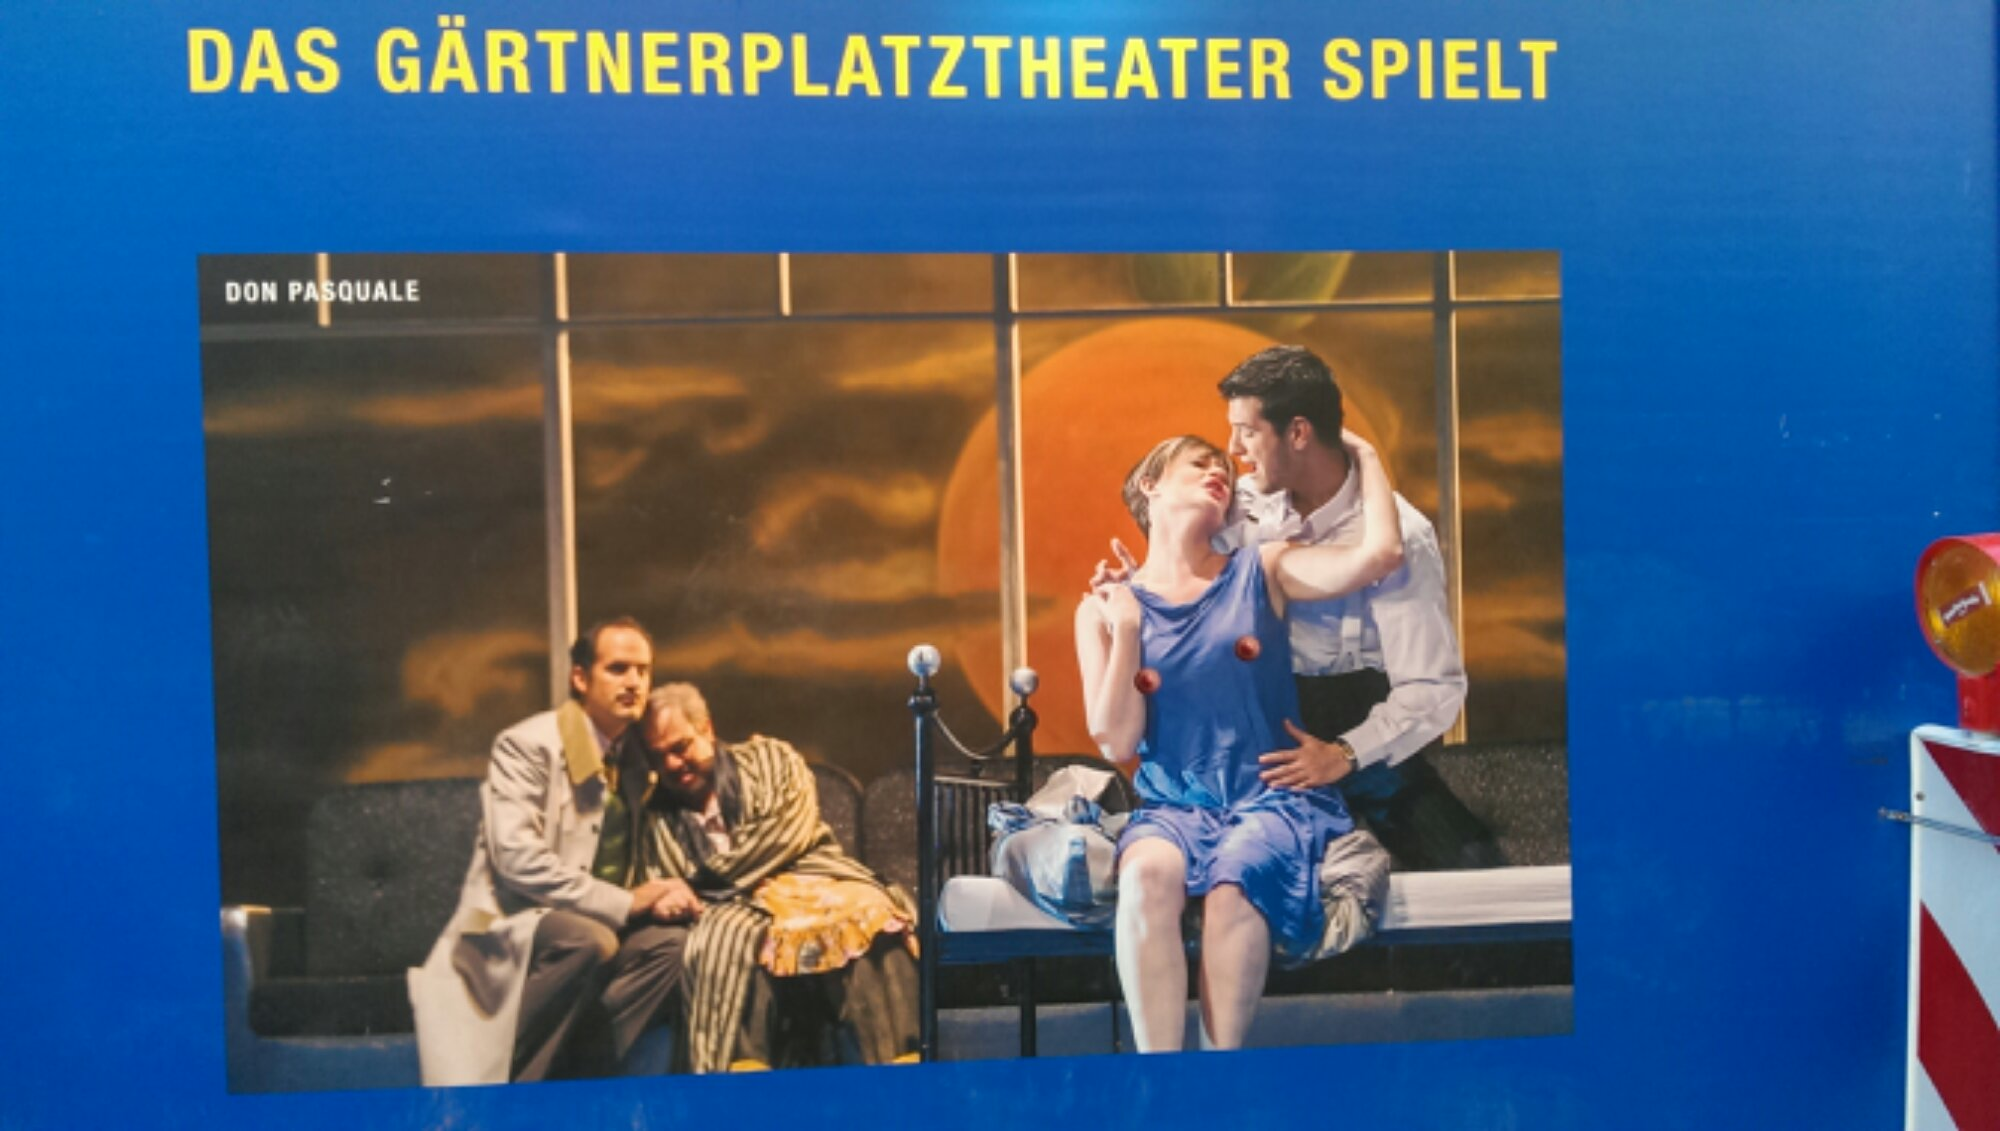 Gärtnerplatz Theater